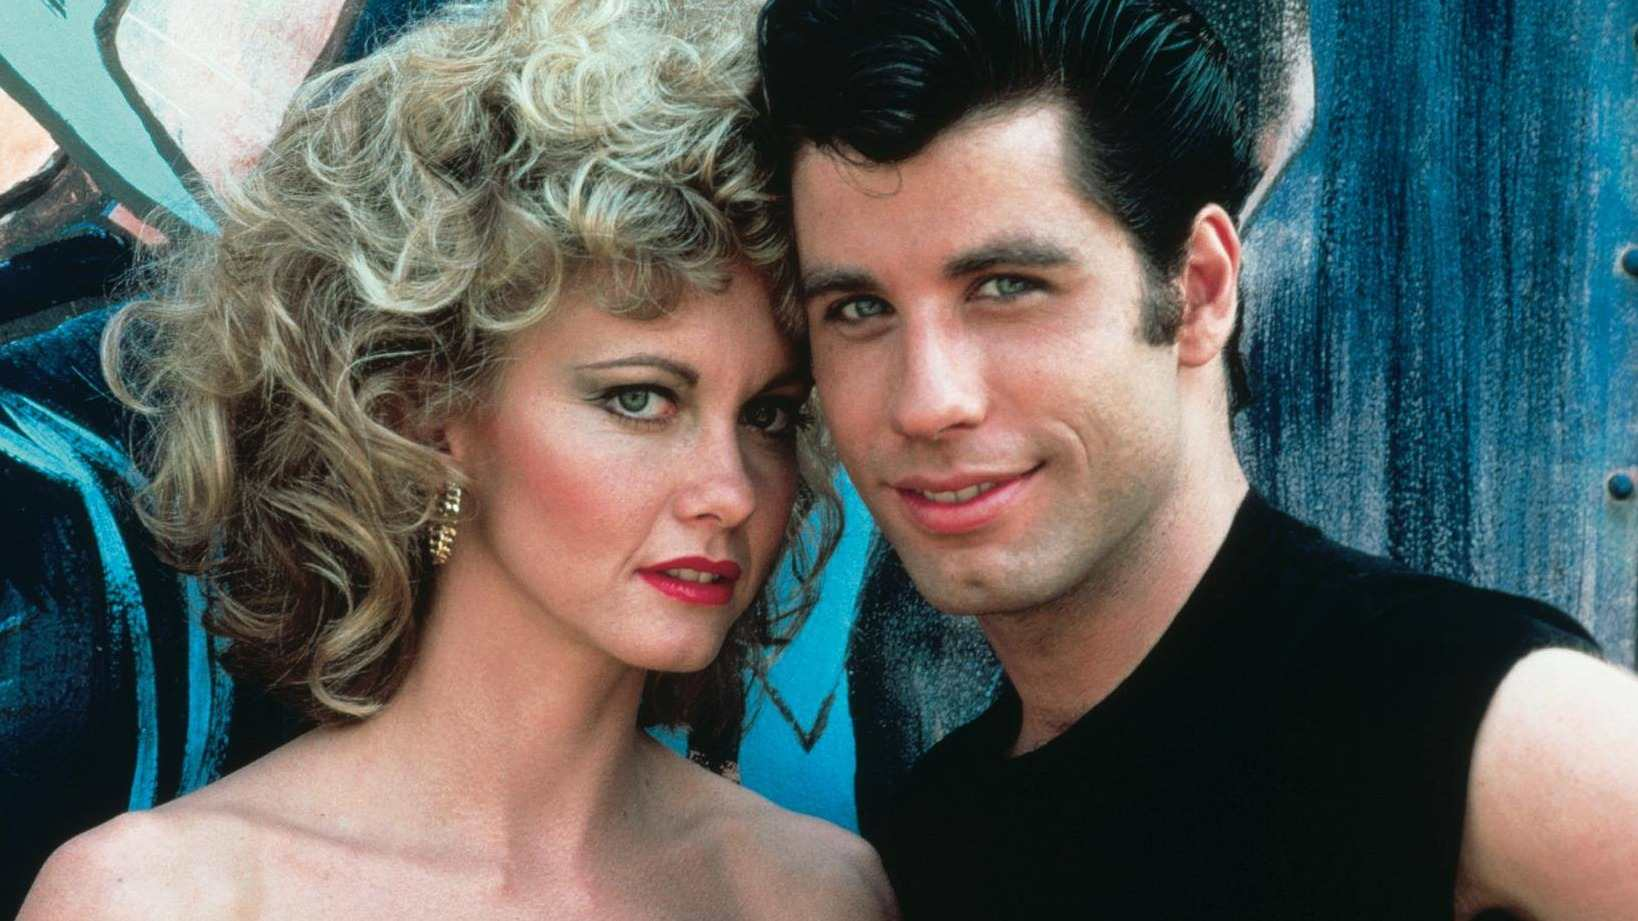 TV SERIES. 1978 film 'Grease' is getting its own TV show, called 'Grease: Rydell High.' Photo from Grease's Facebook page